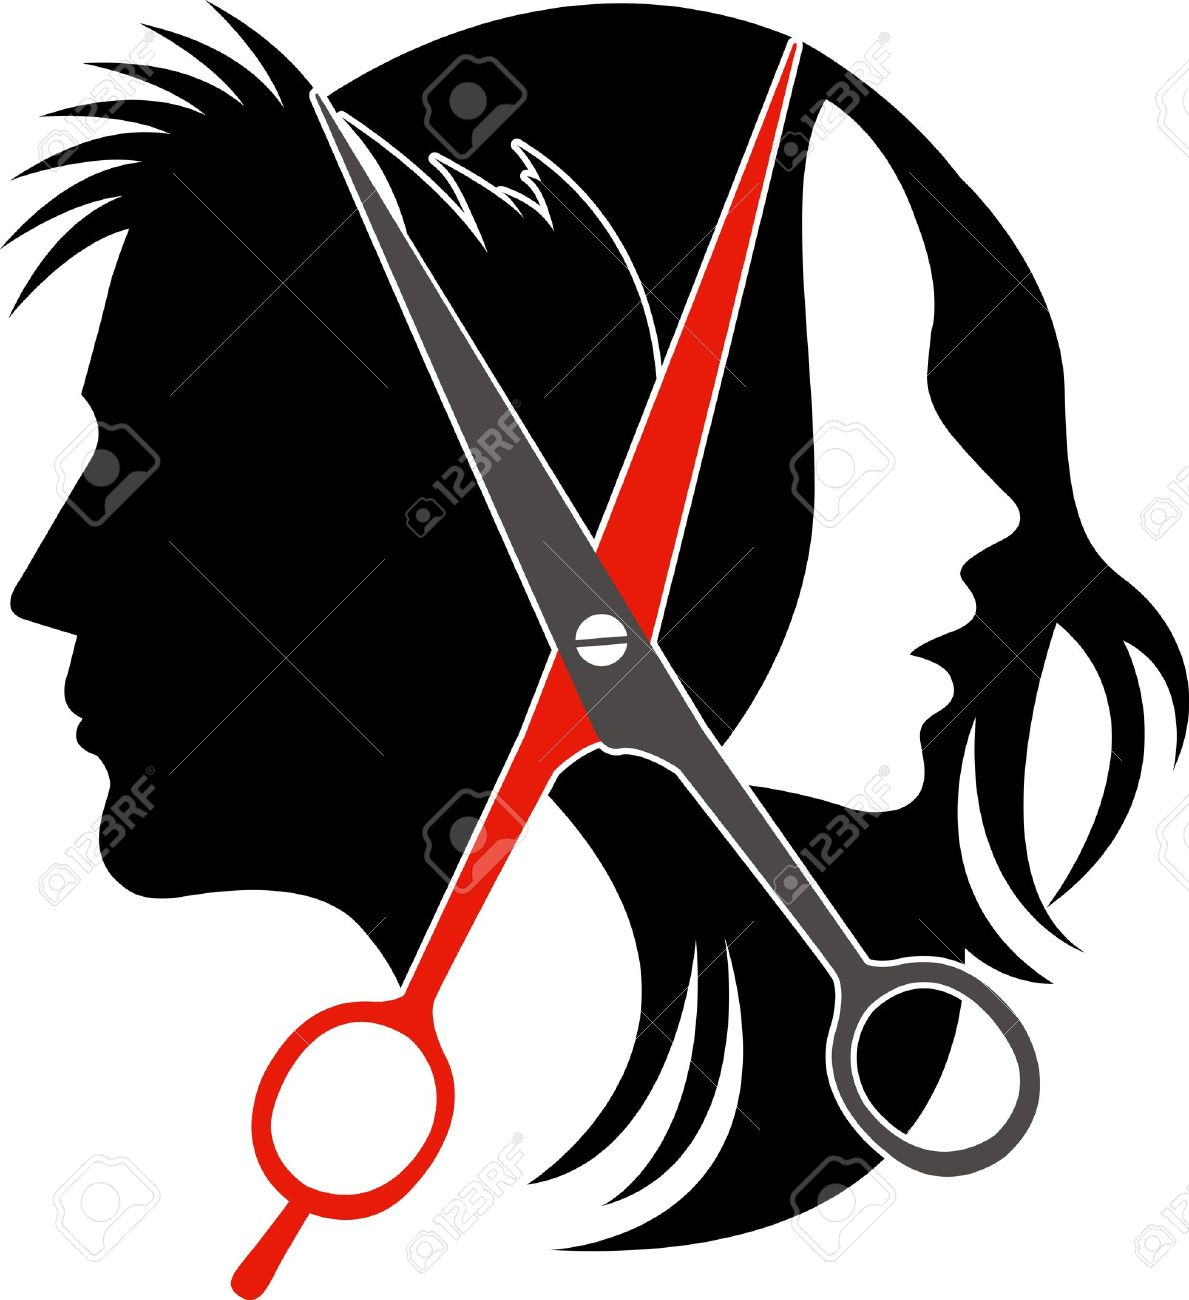 Hair salon chair isolated stock photos illustrations and vector art - Cutting Hair Illustration Art Of Salon Concept On Isolated Background Illustration